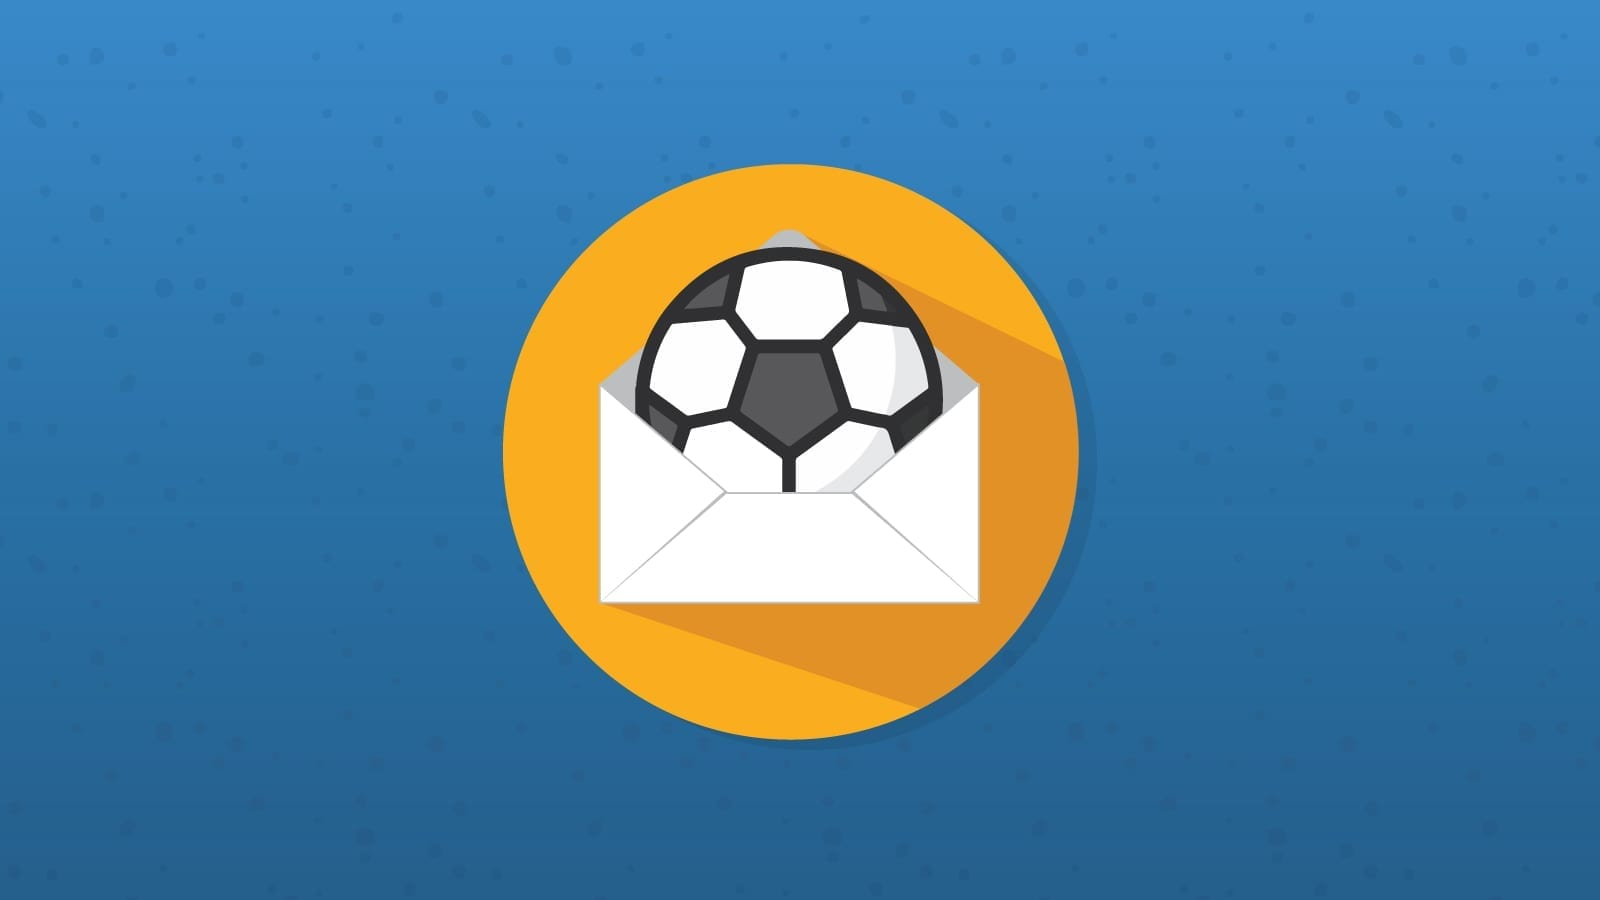 Countries of the World Cup email laws